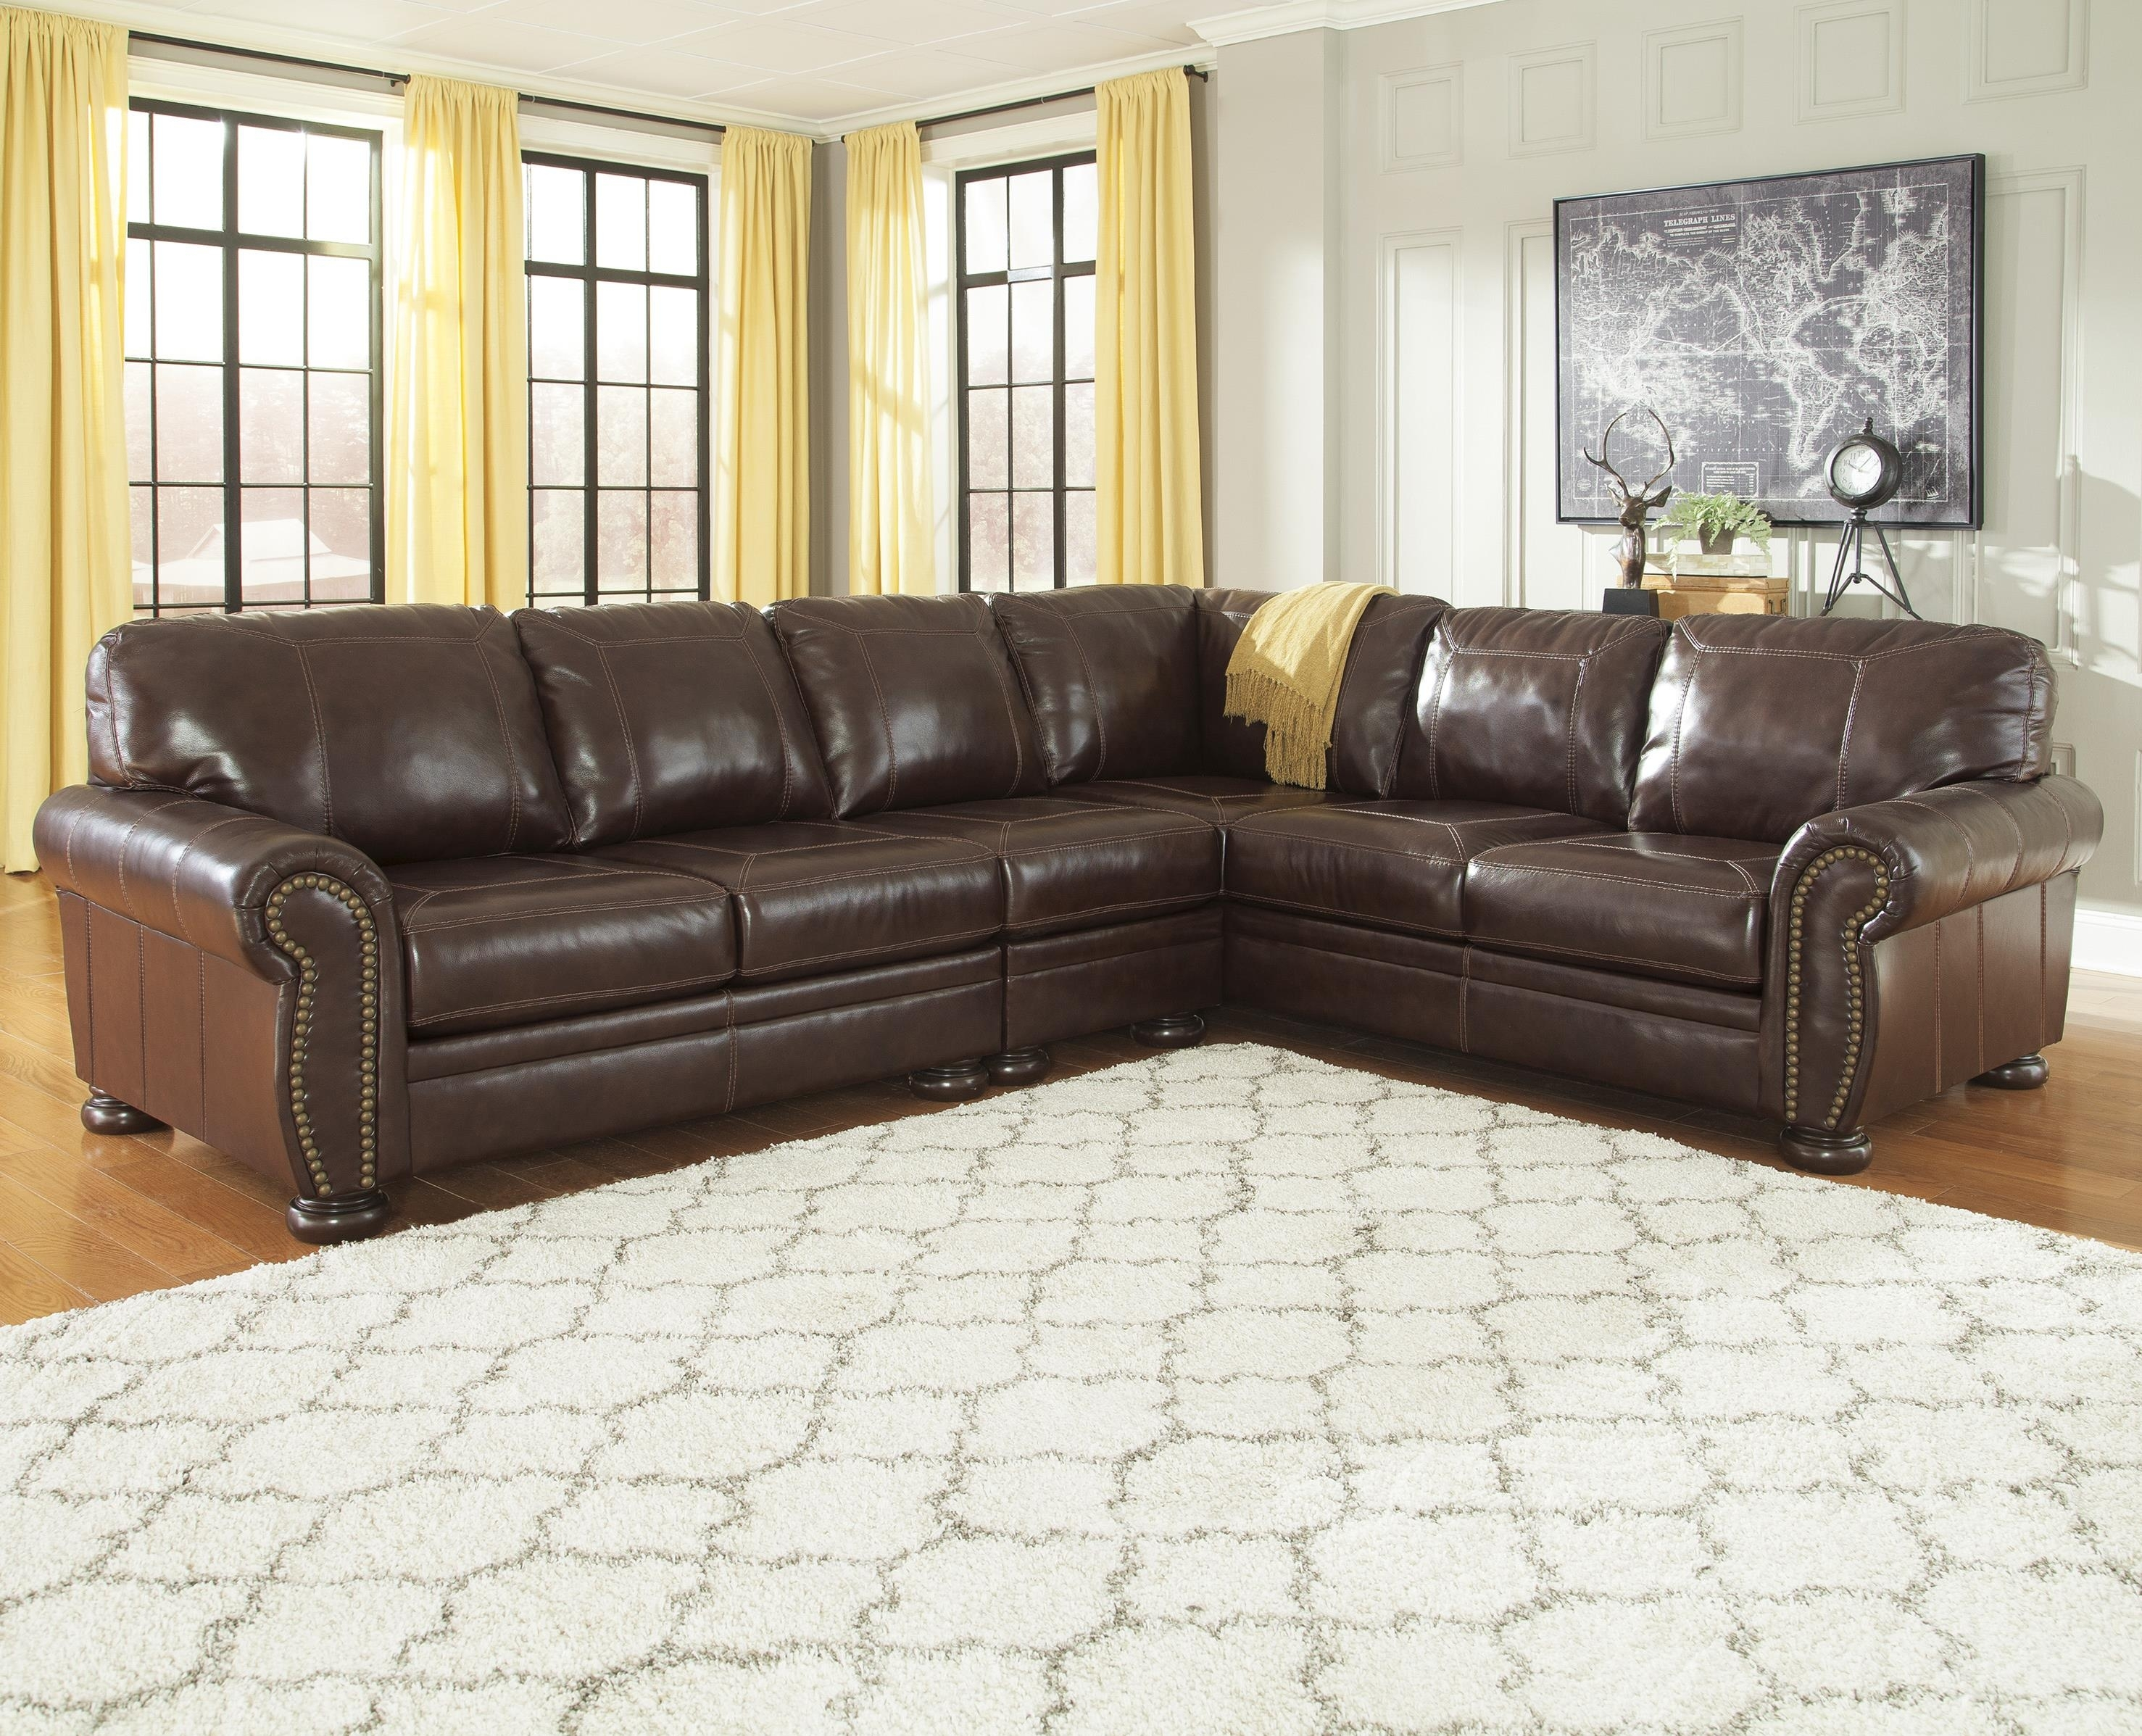 Signature Designashley Banner 3-Piece Leather Match Sectional with Jackson 6 Piece Power Reclining Sectionals With  Sleeper (Image 27 of 30)